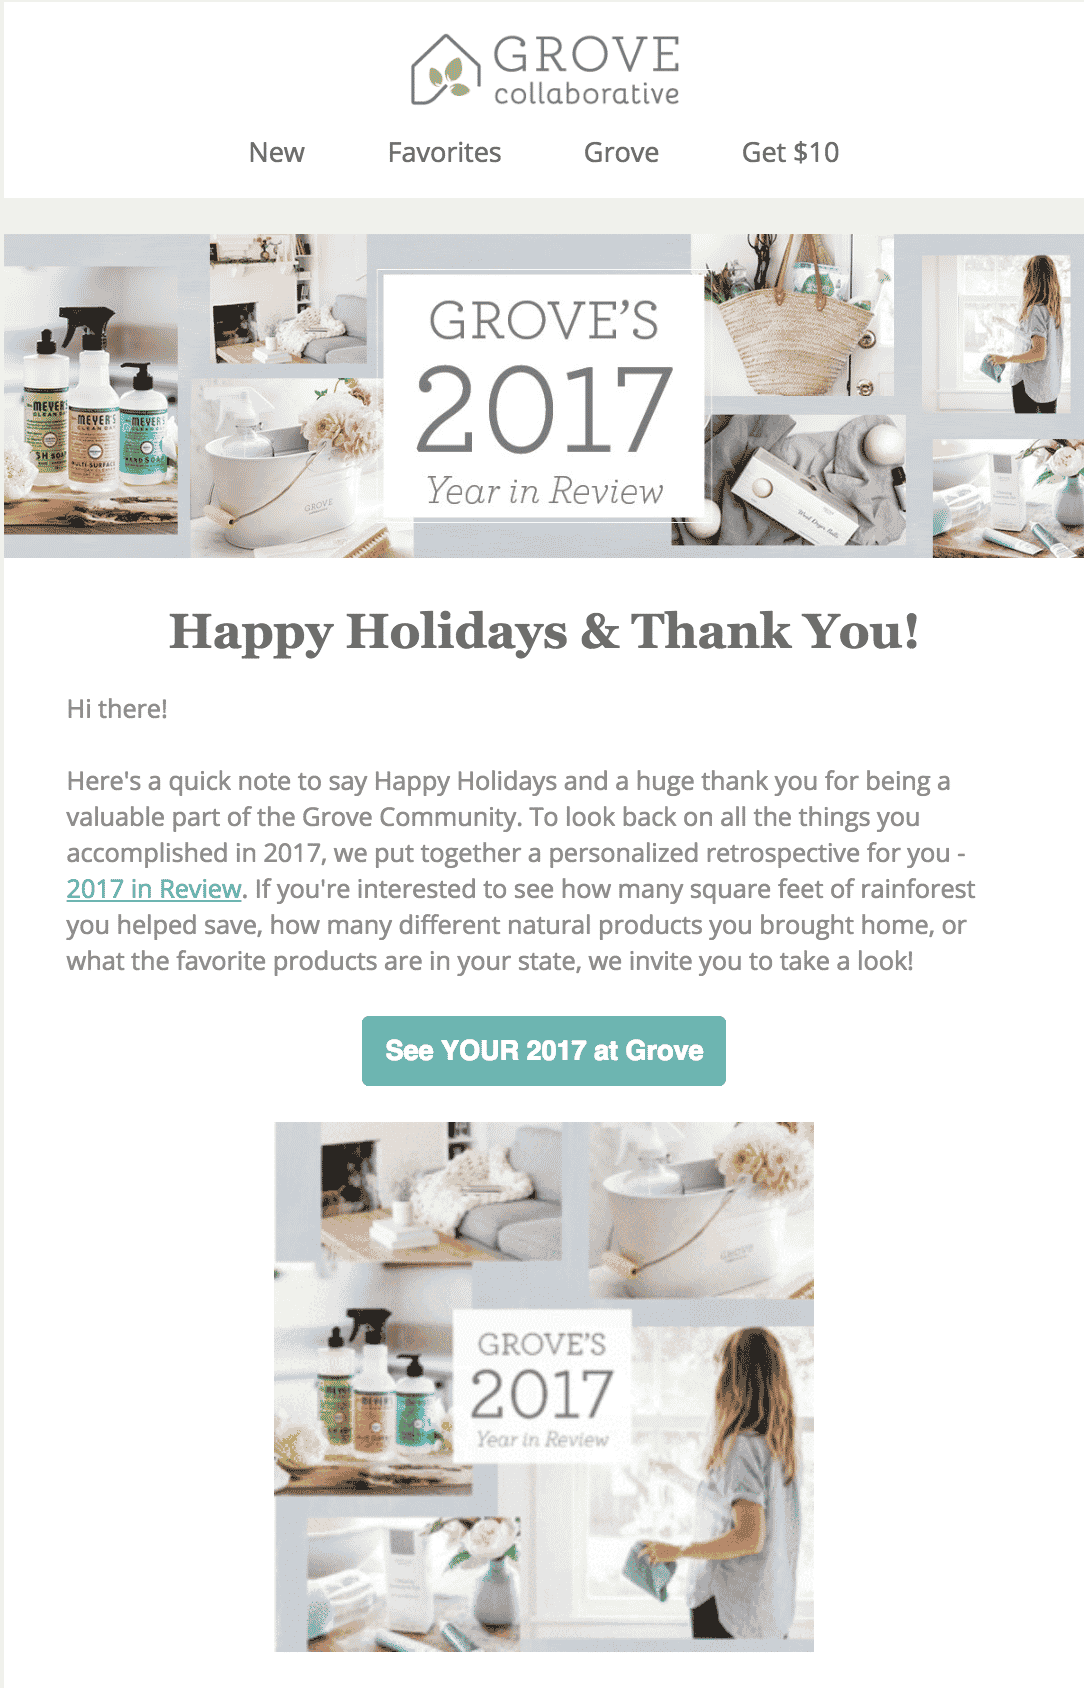 Holiday emails: Grove